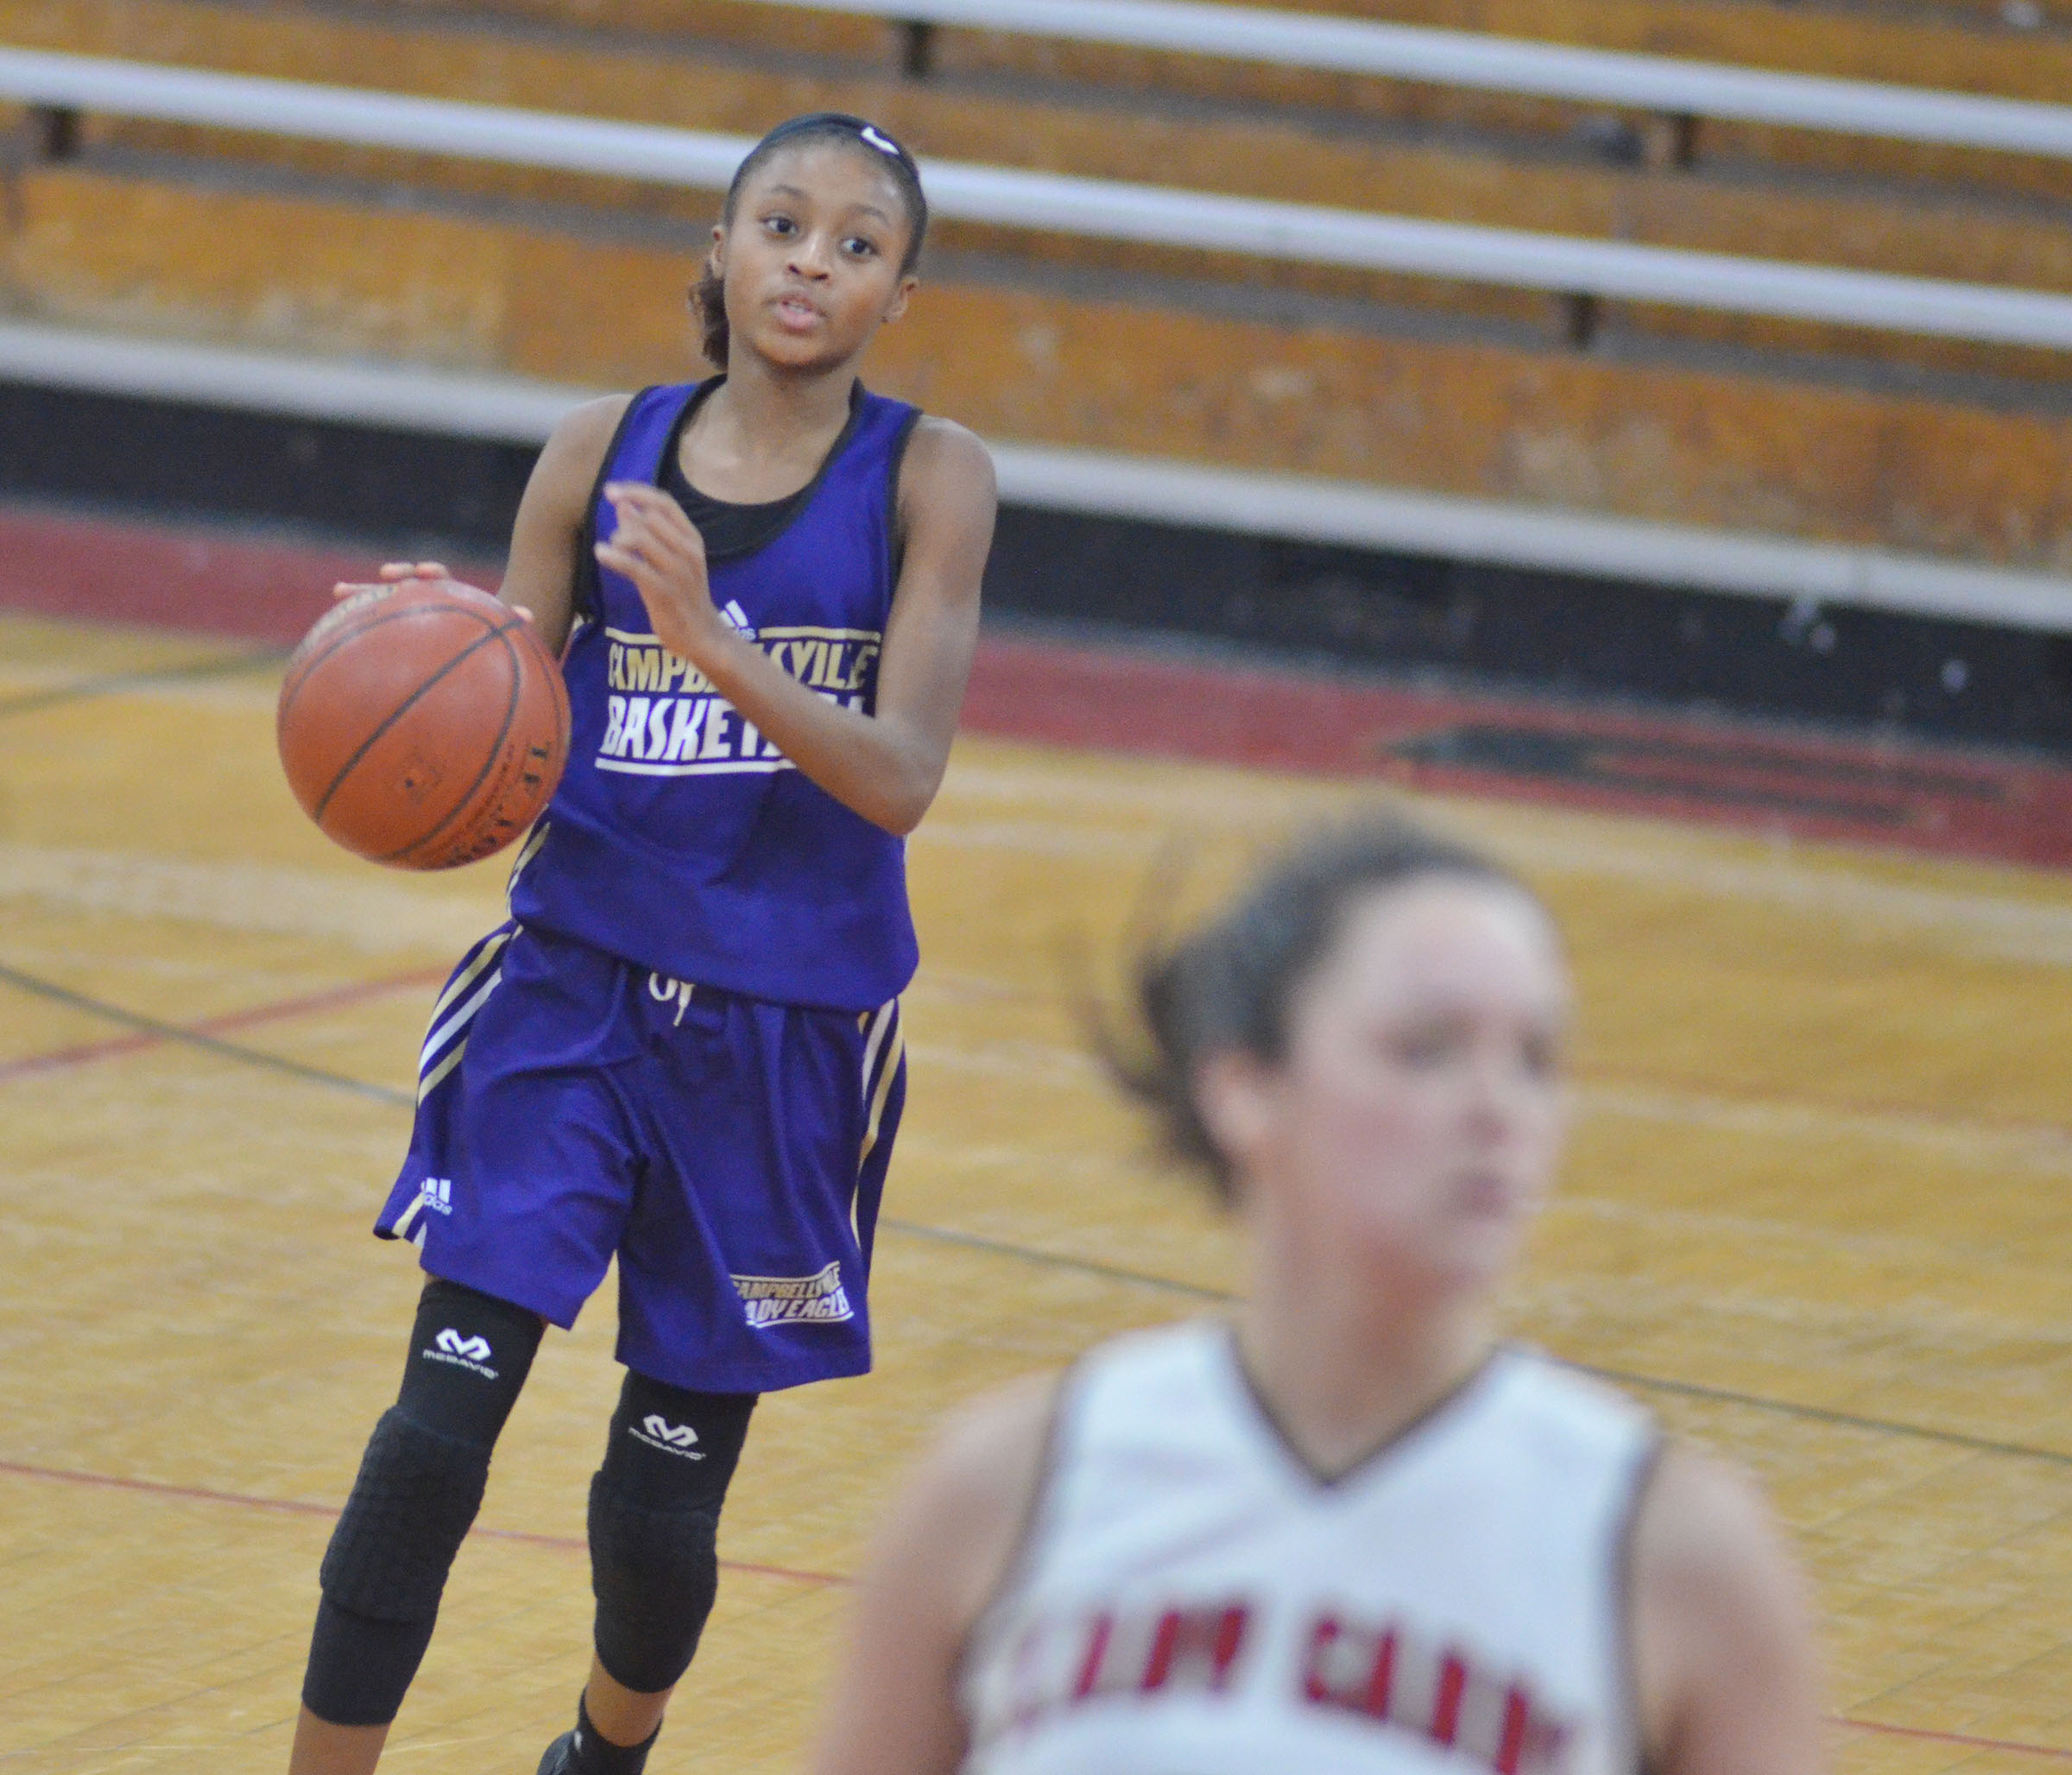 Campbellsville Middle School seventh-grader Bri Gowdy dribbles to the hoop.